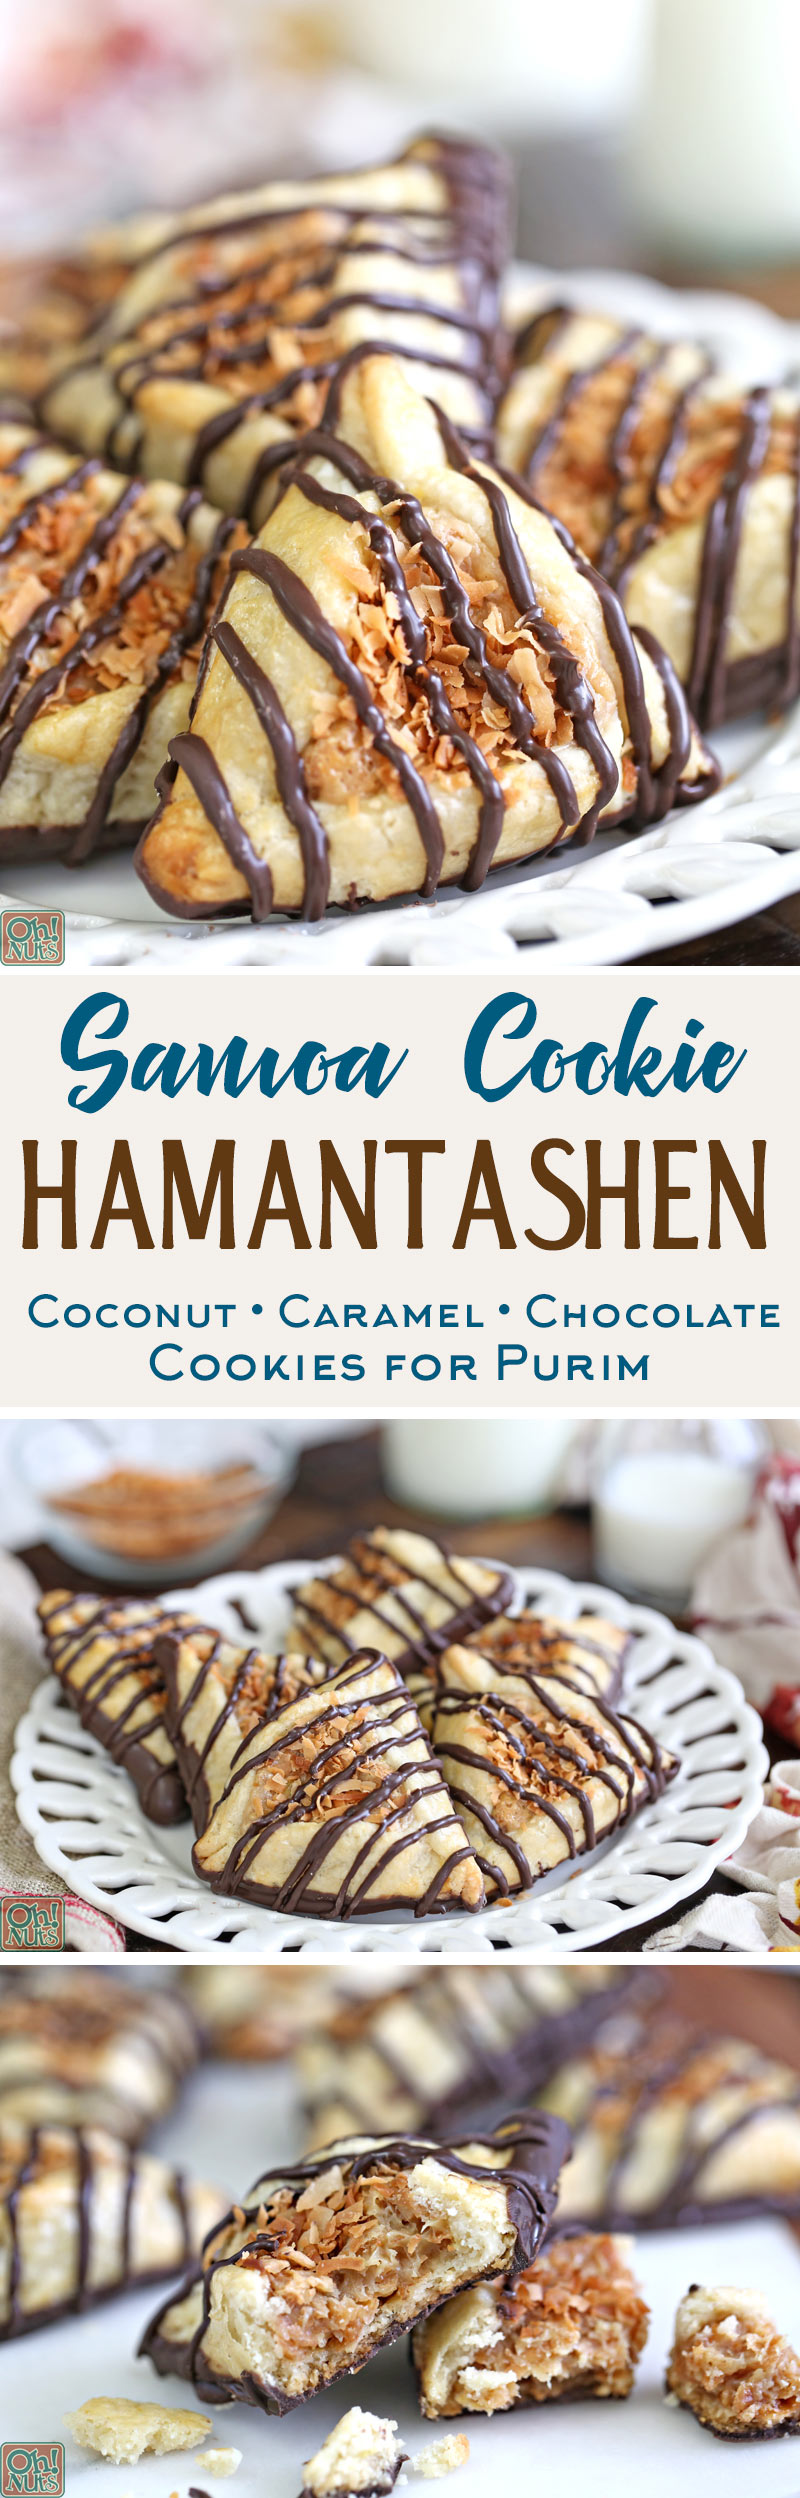 Samoa Cookie Hamantashen - Purim cookies with caramel, toasted coconut, and chocolate | From OhNuts.com